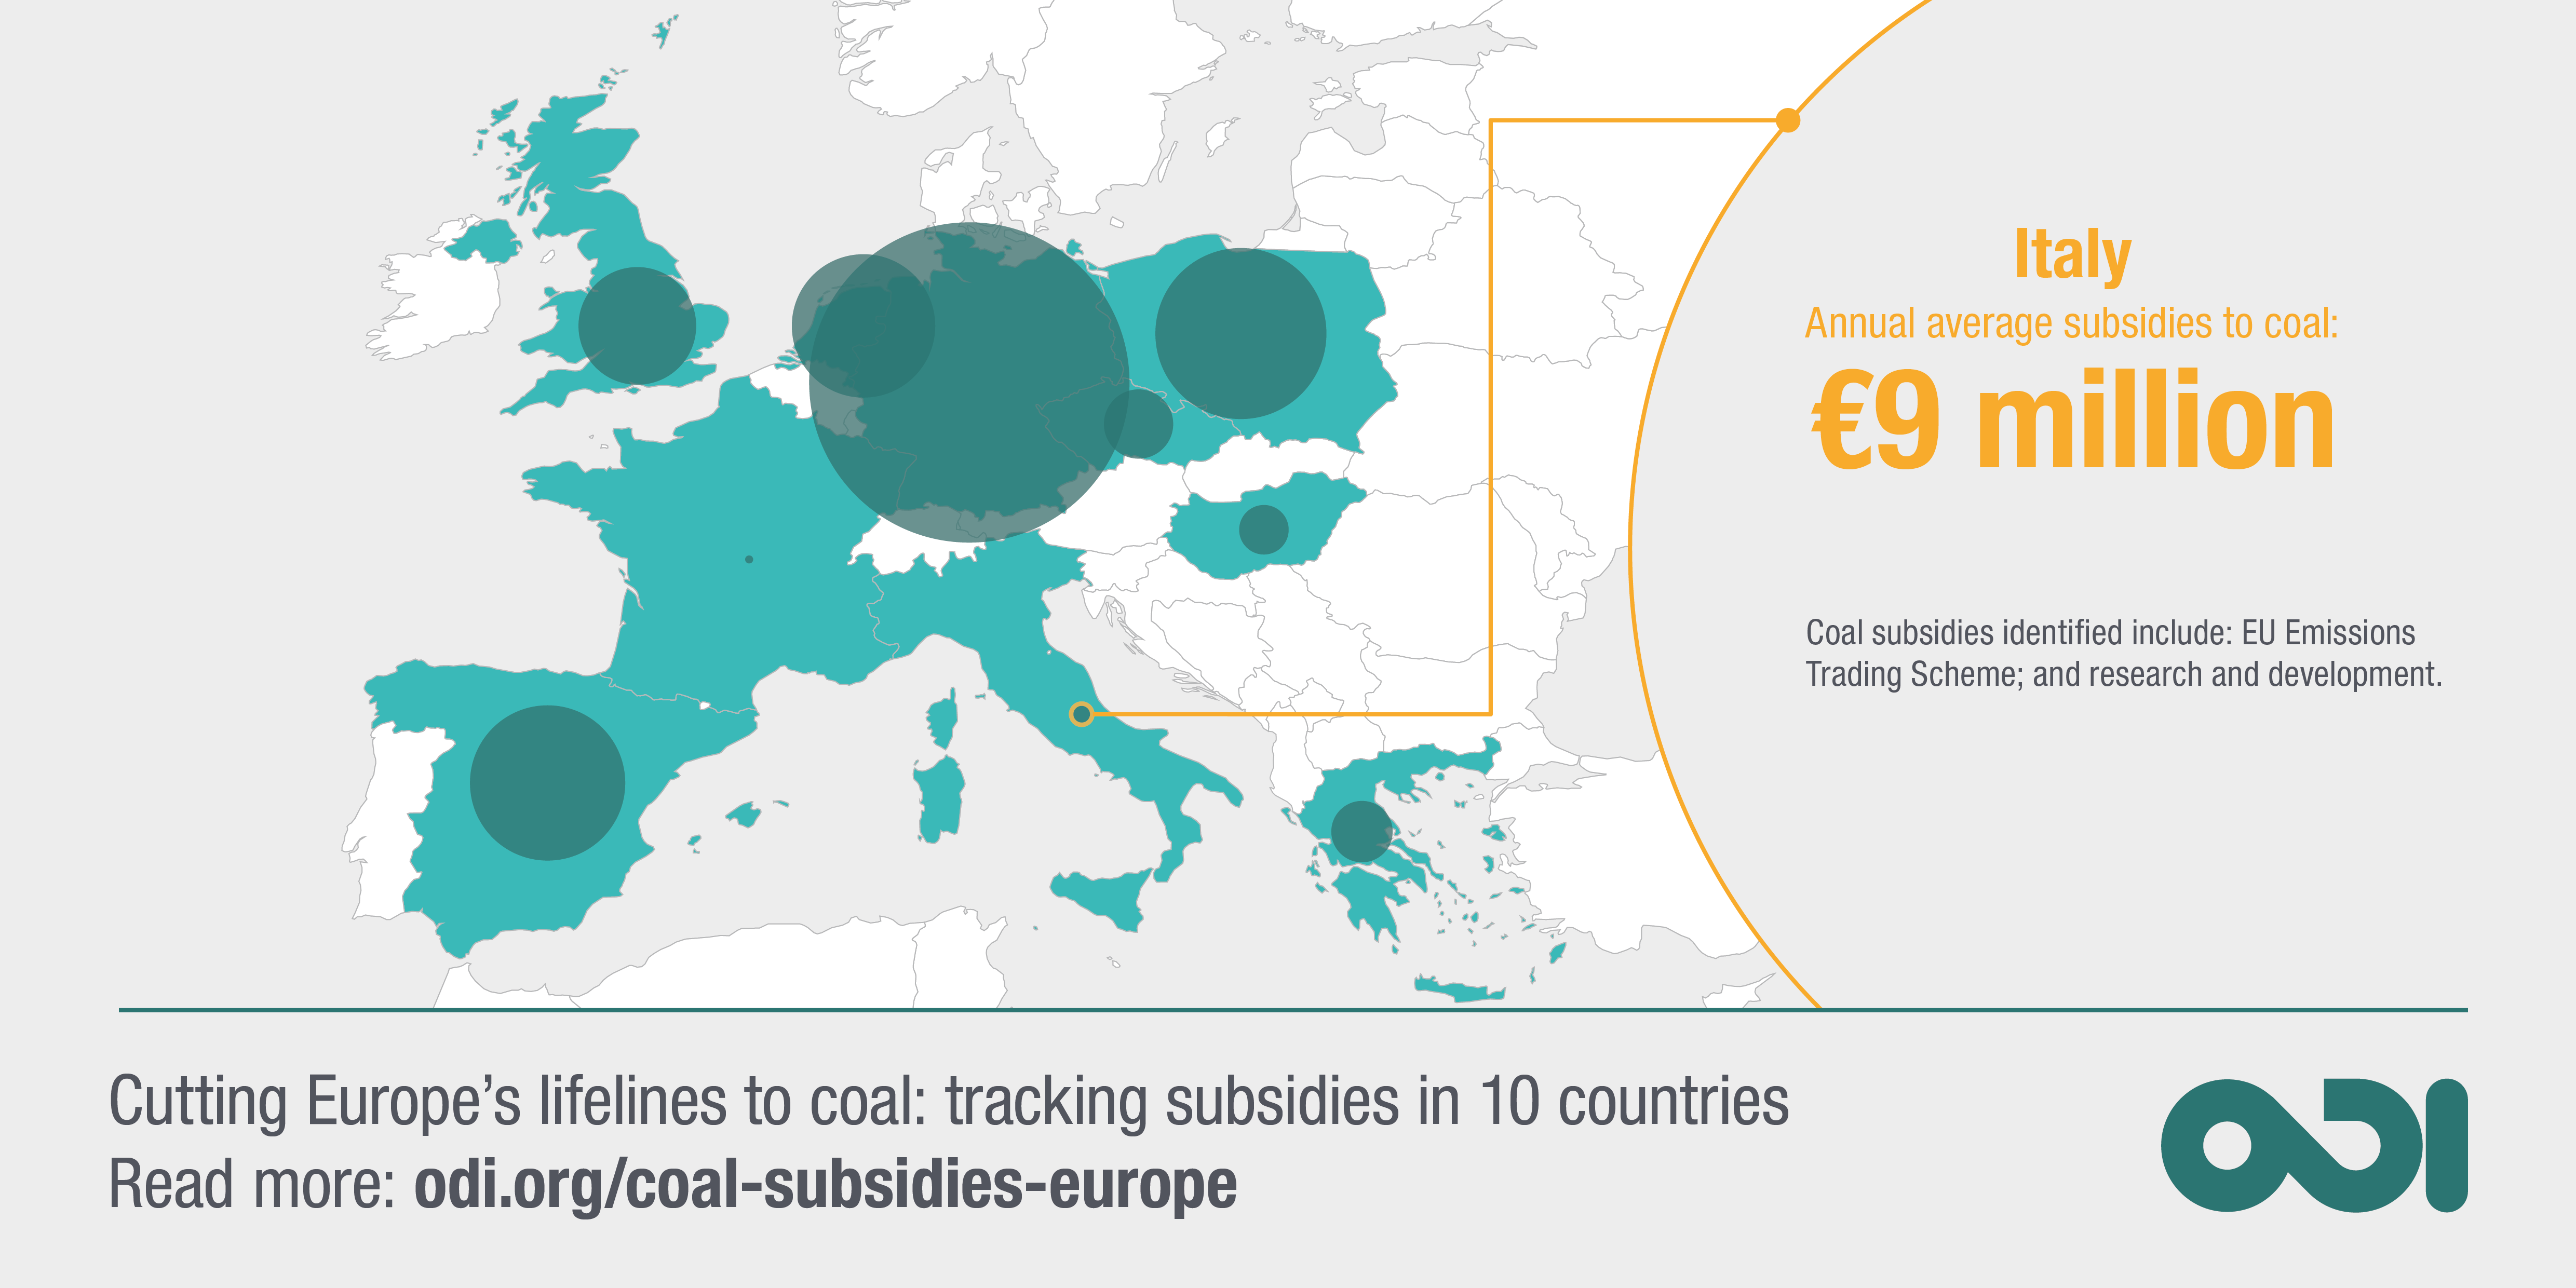 Infographic: Coal subsidies in Italy